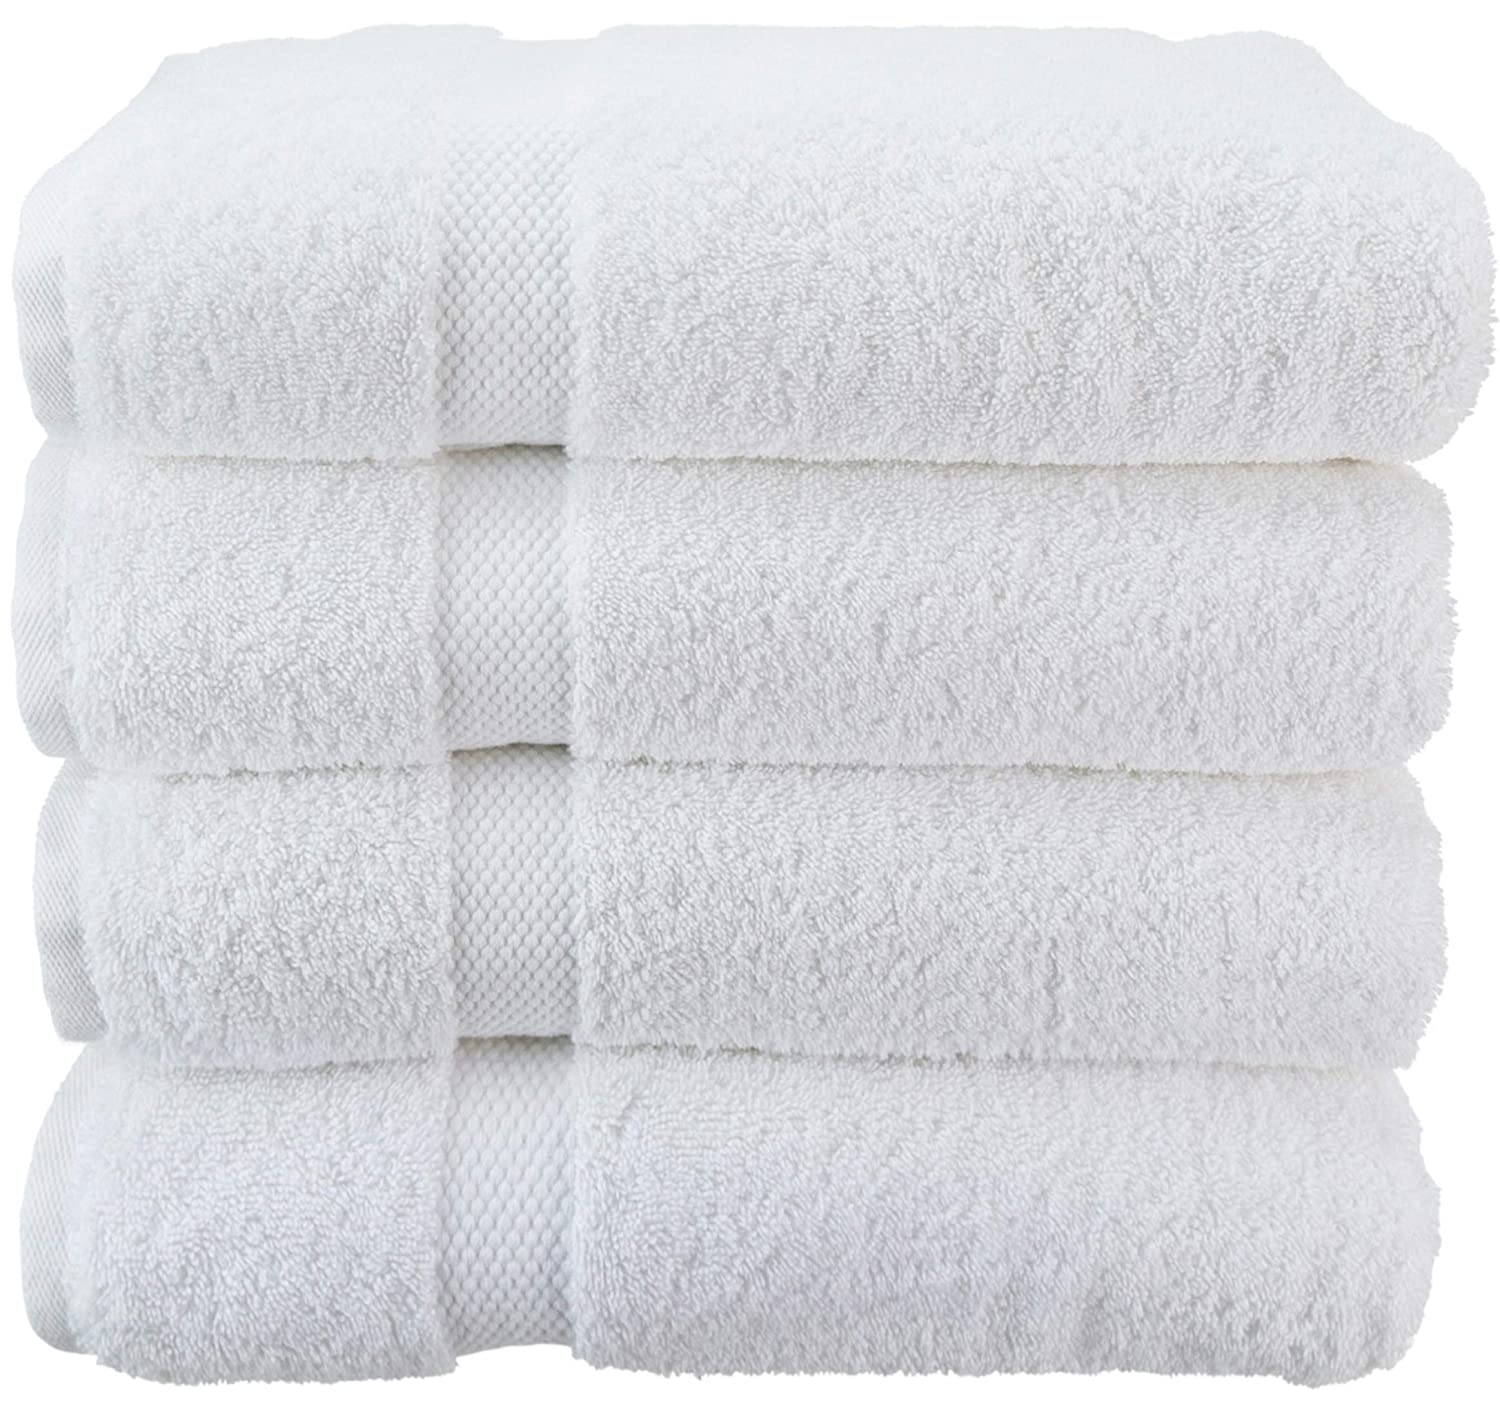 Wealuxe Cotton Bath Towels - Soft and Absorbent Hotel Towel - 27x52 Inch - 4 Pack - White